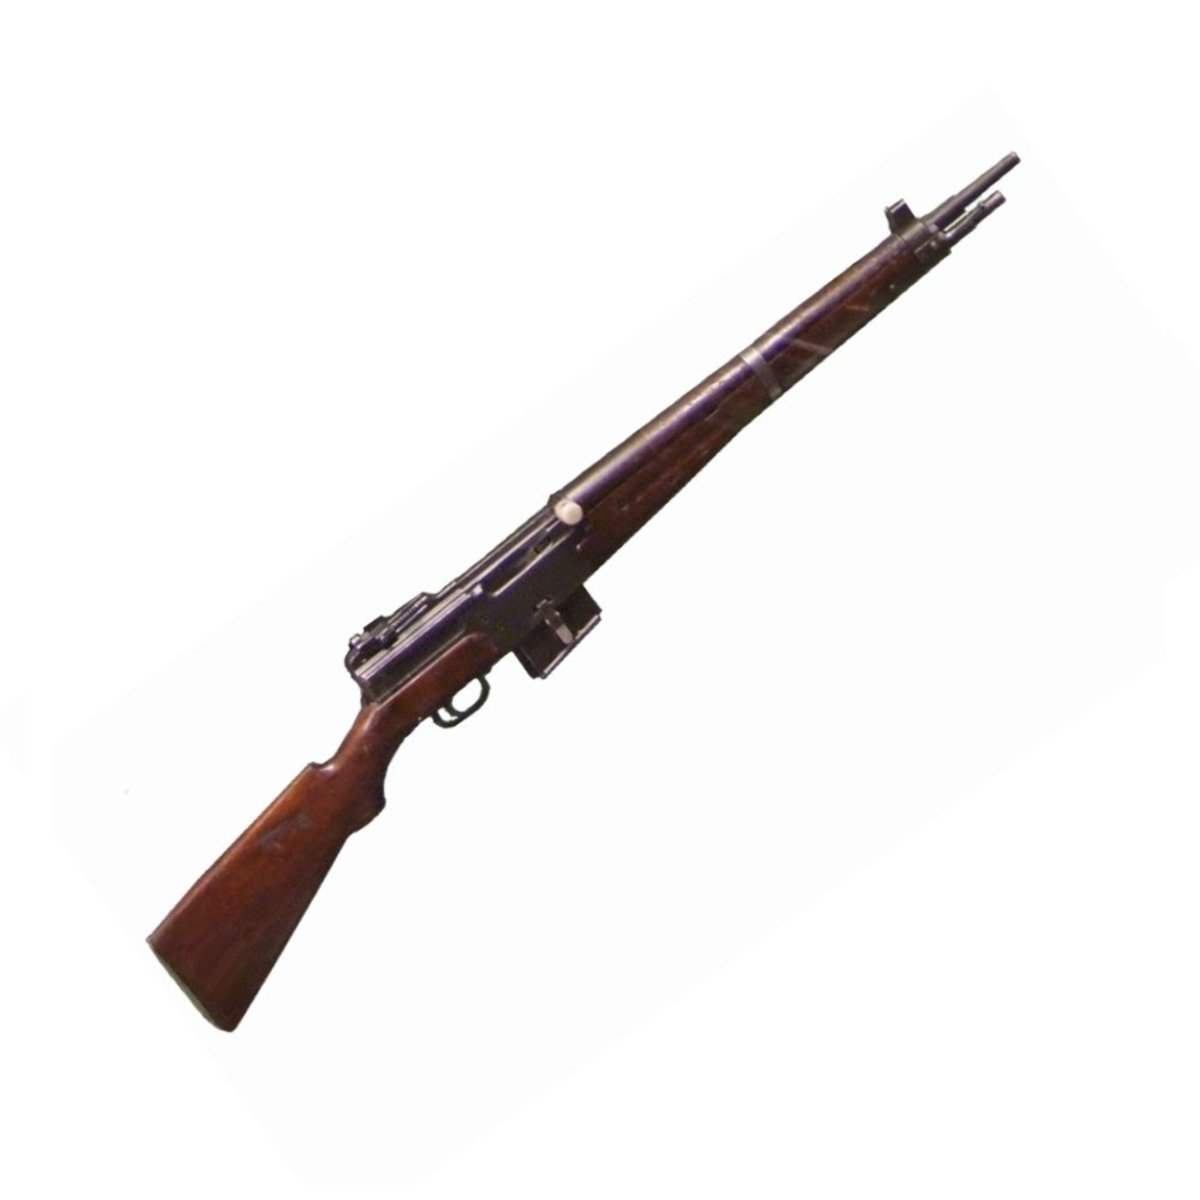 Although the MAS-49 was a post-war semi-automatic rifle, it was essentially just the French MAS-40 semiautomatic rifle.